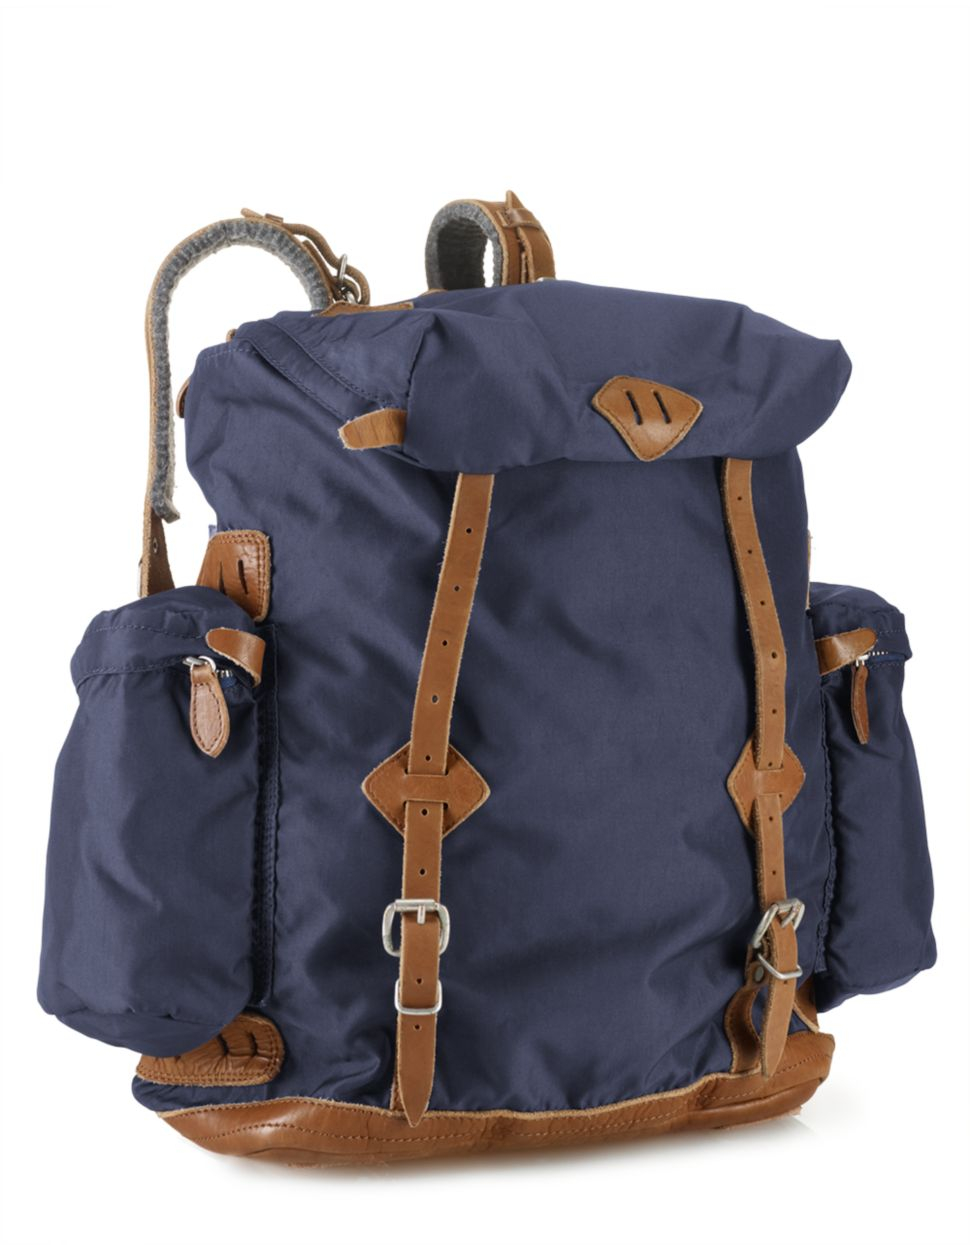 Polo Ralph Lauren Yosemite Canvas Backpack in Blue for Men - Lyst 12b52ceb987bd